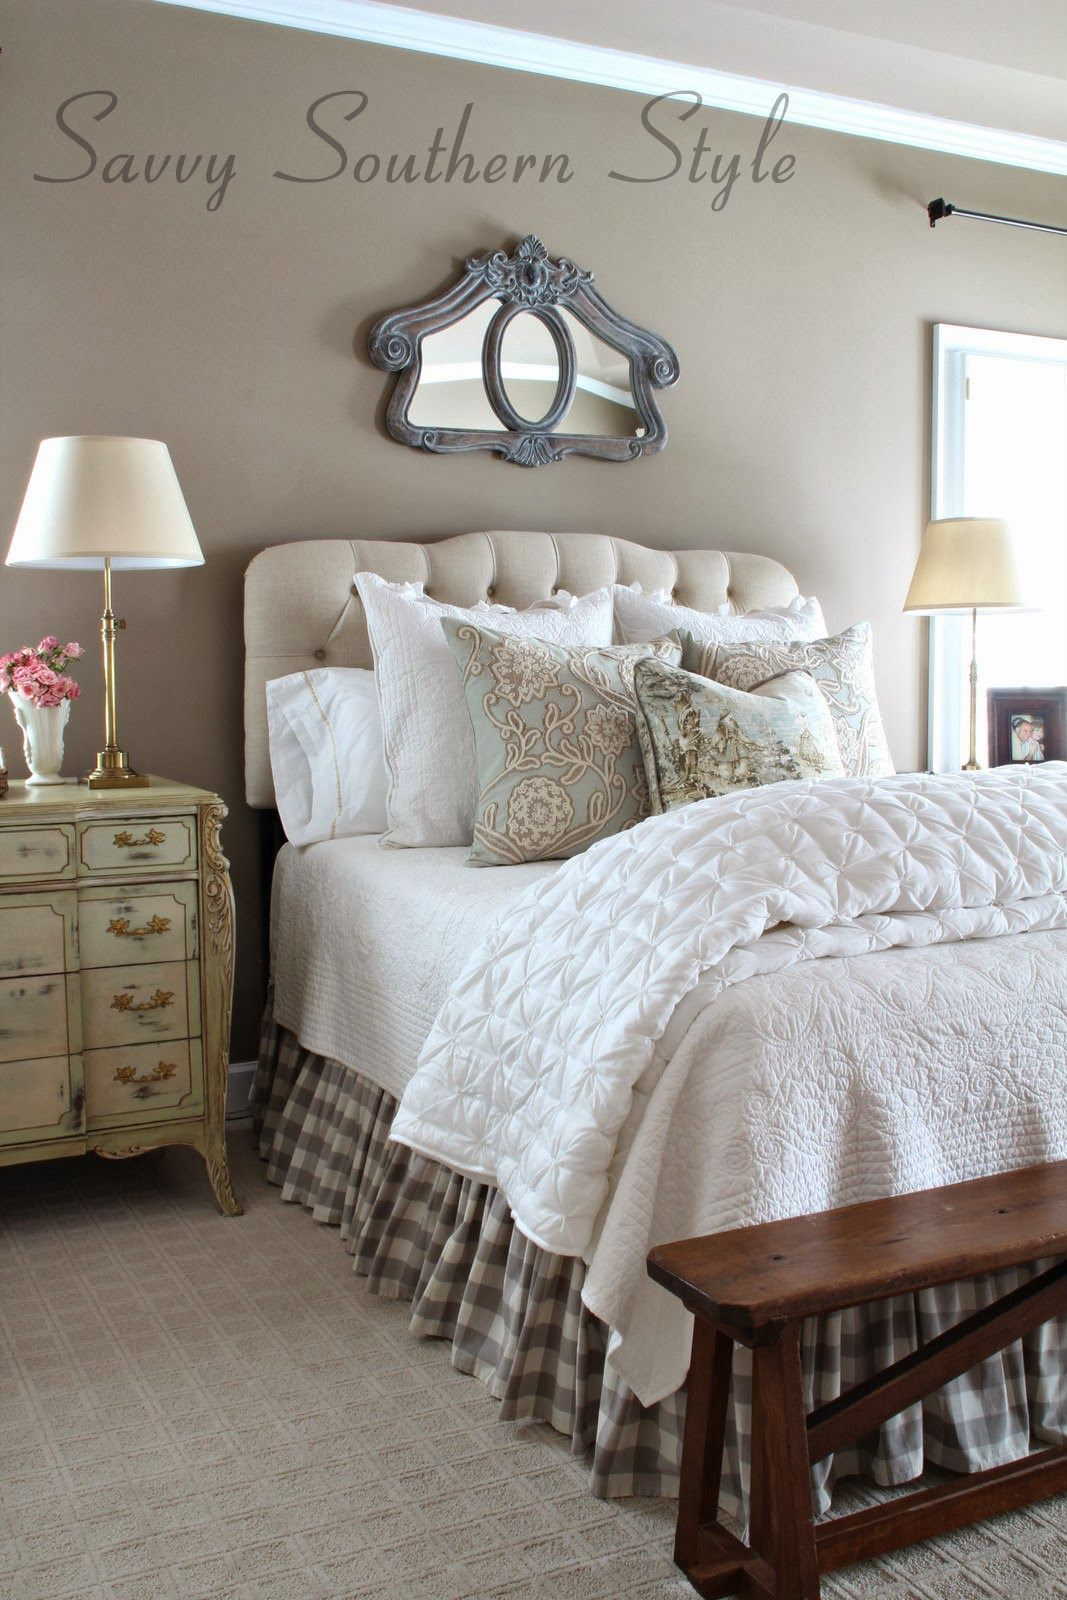 Savvy southern style adding french farmhouse style in the for Bed styles images